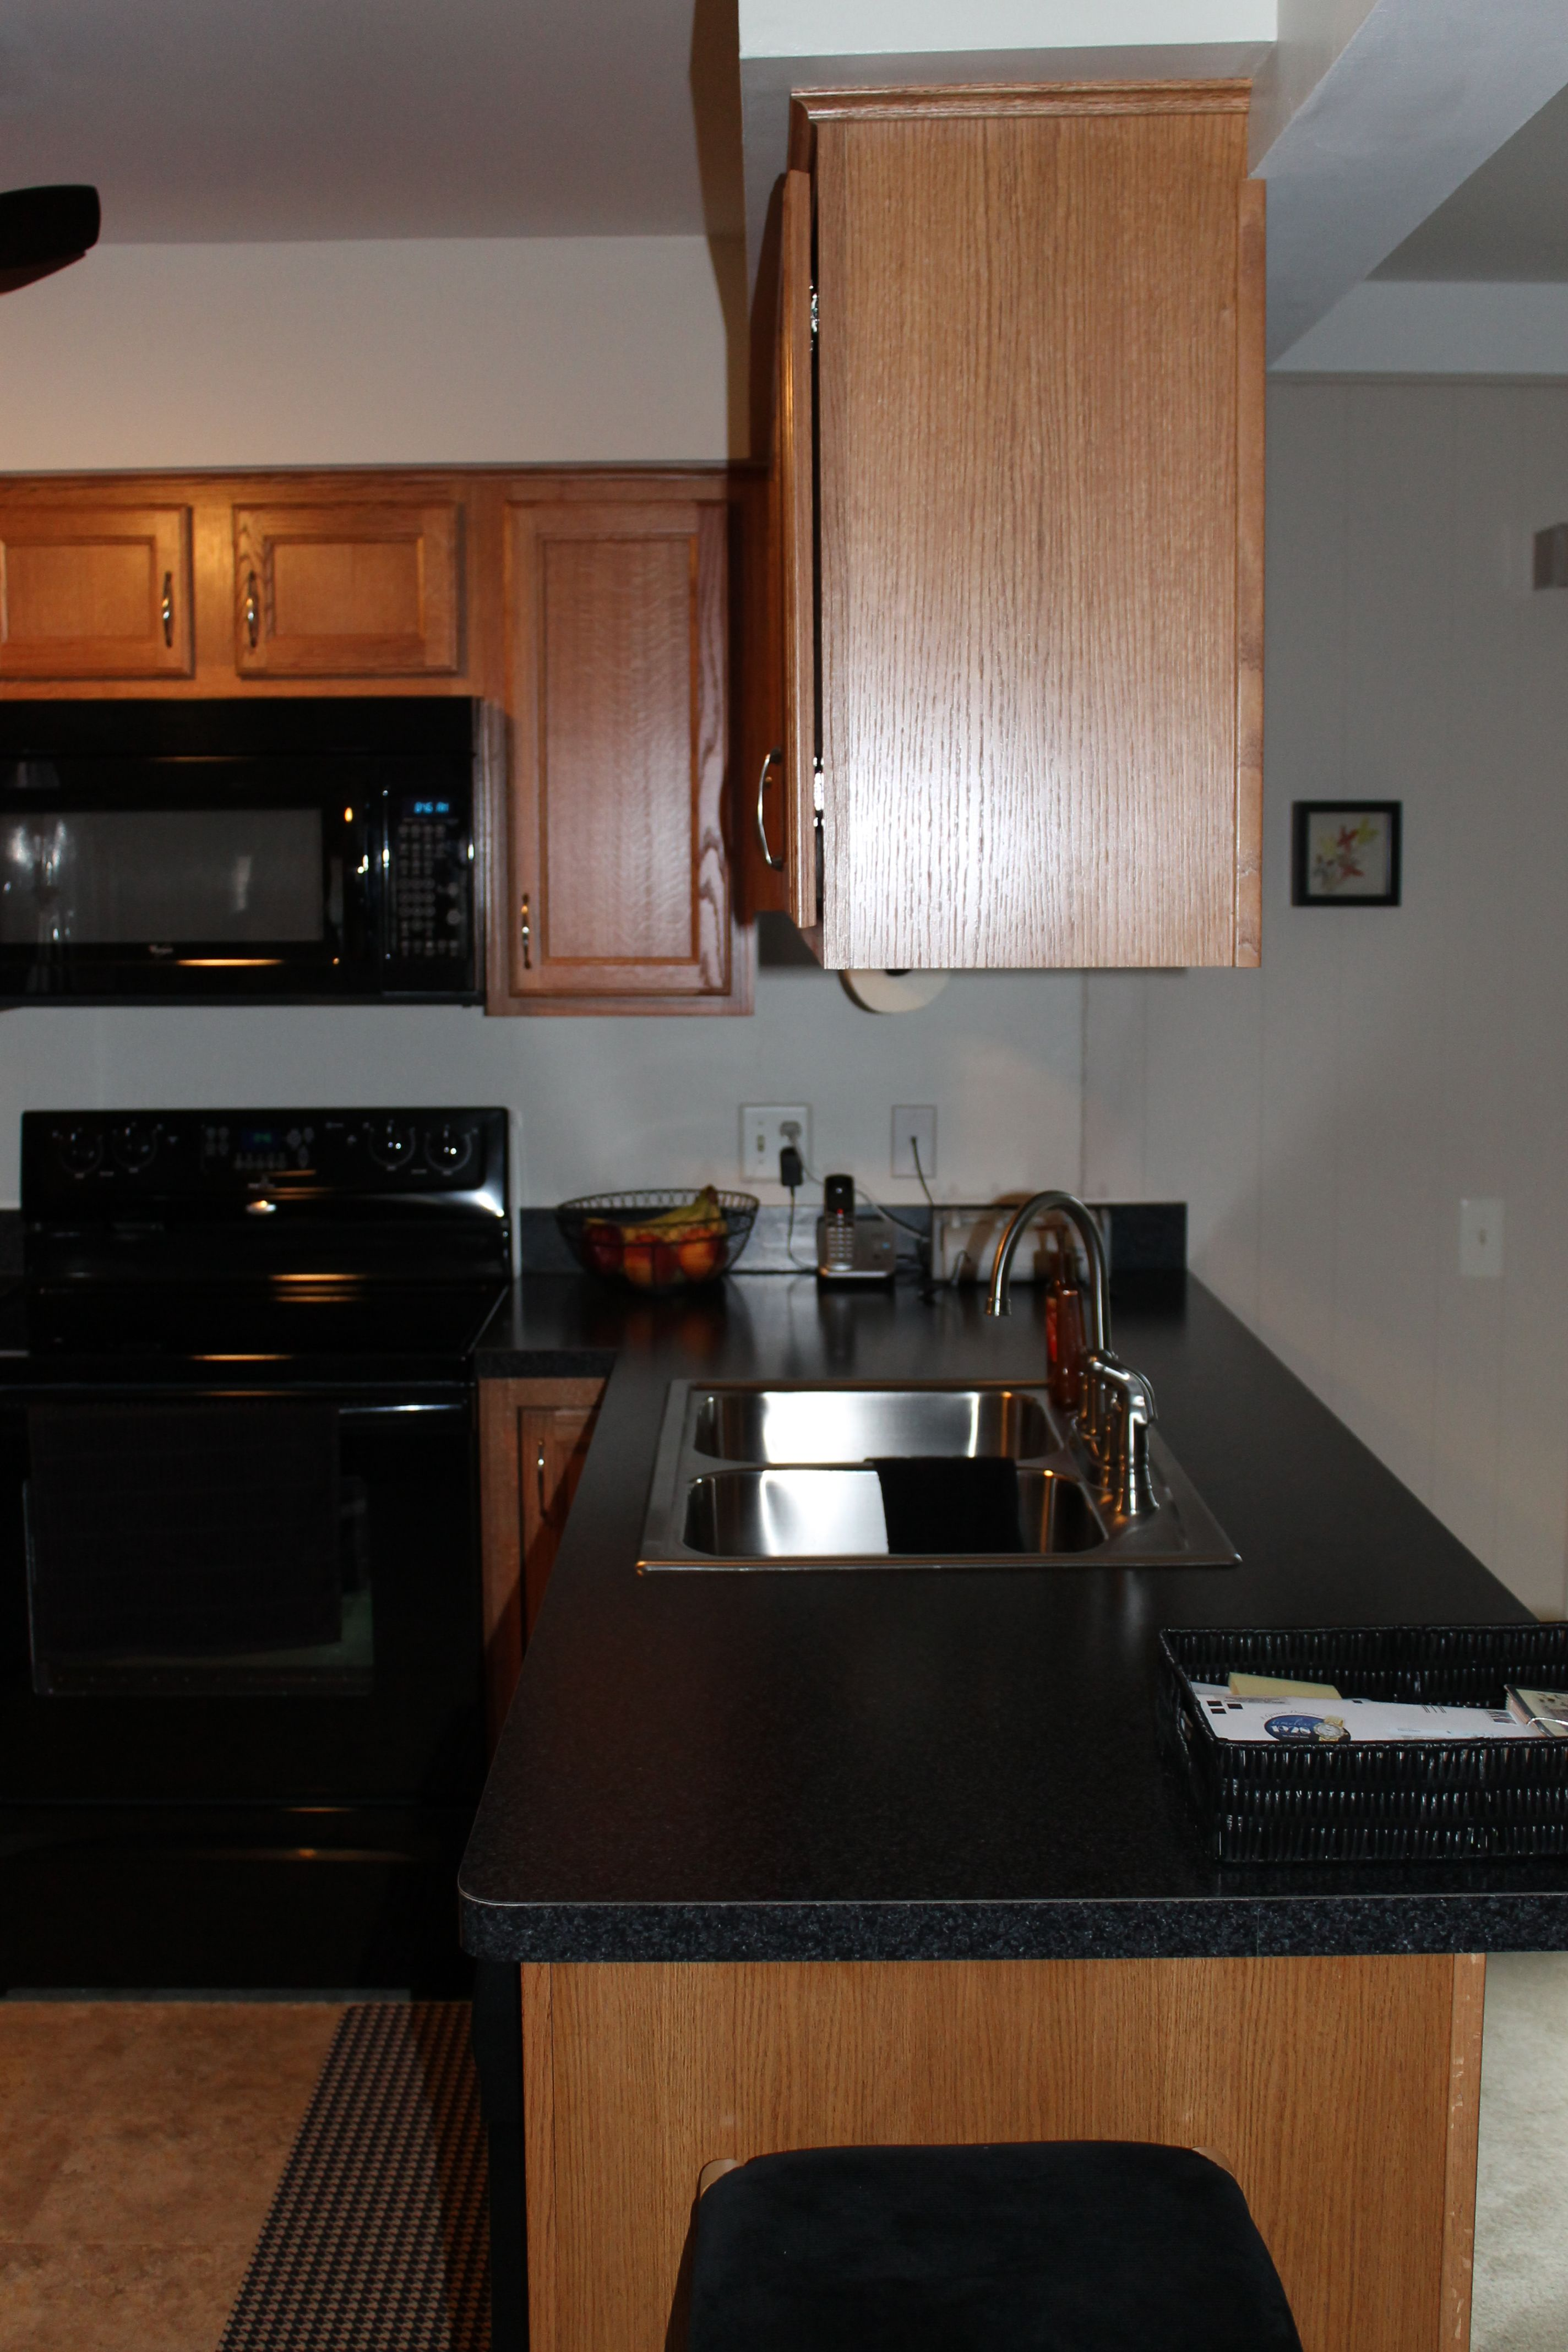 Medium, Light Shaker Style Cabinetry with Black Appliances and ...